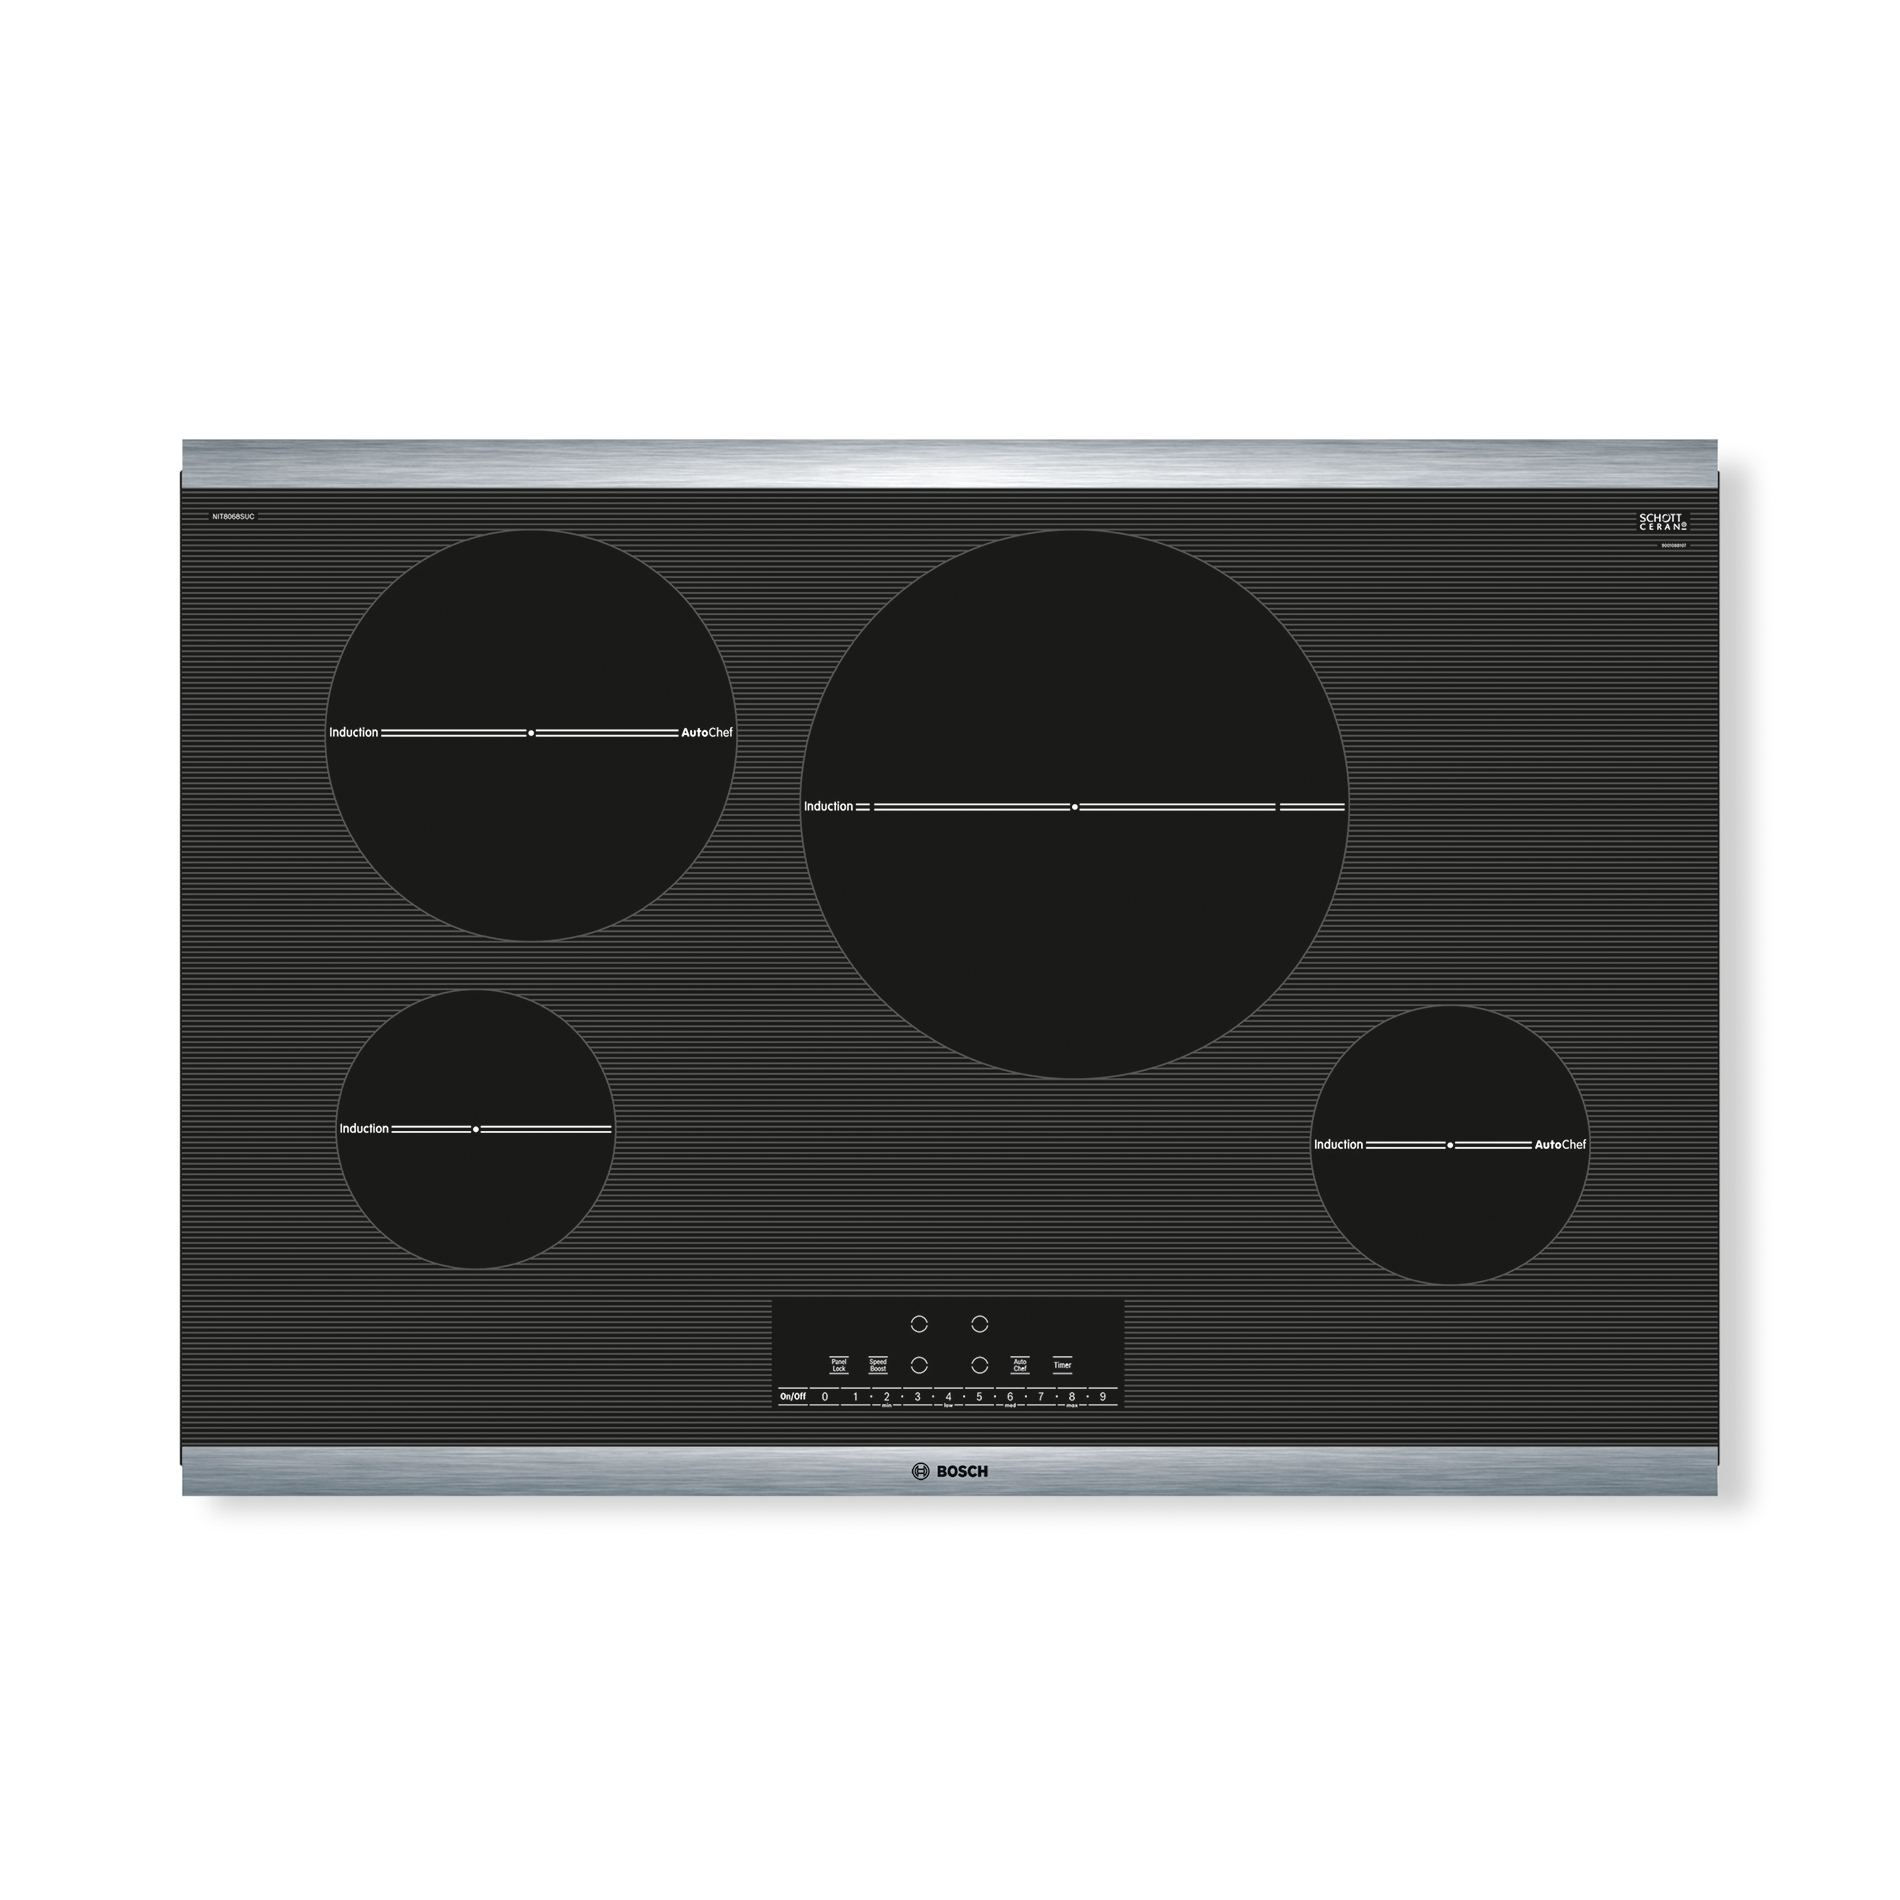 Bosch NIT8068SUC 300 Series 30 Induction Cooktop w Touch